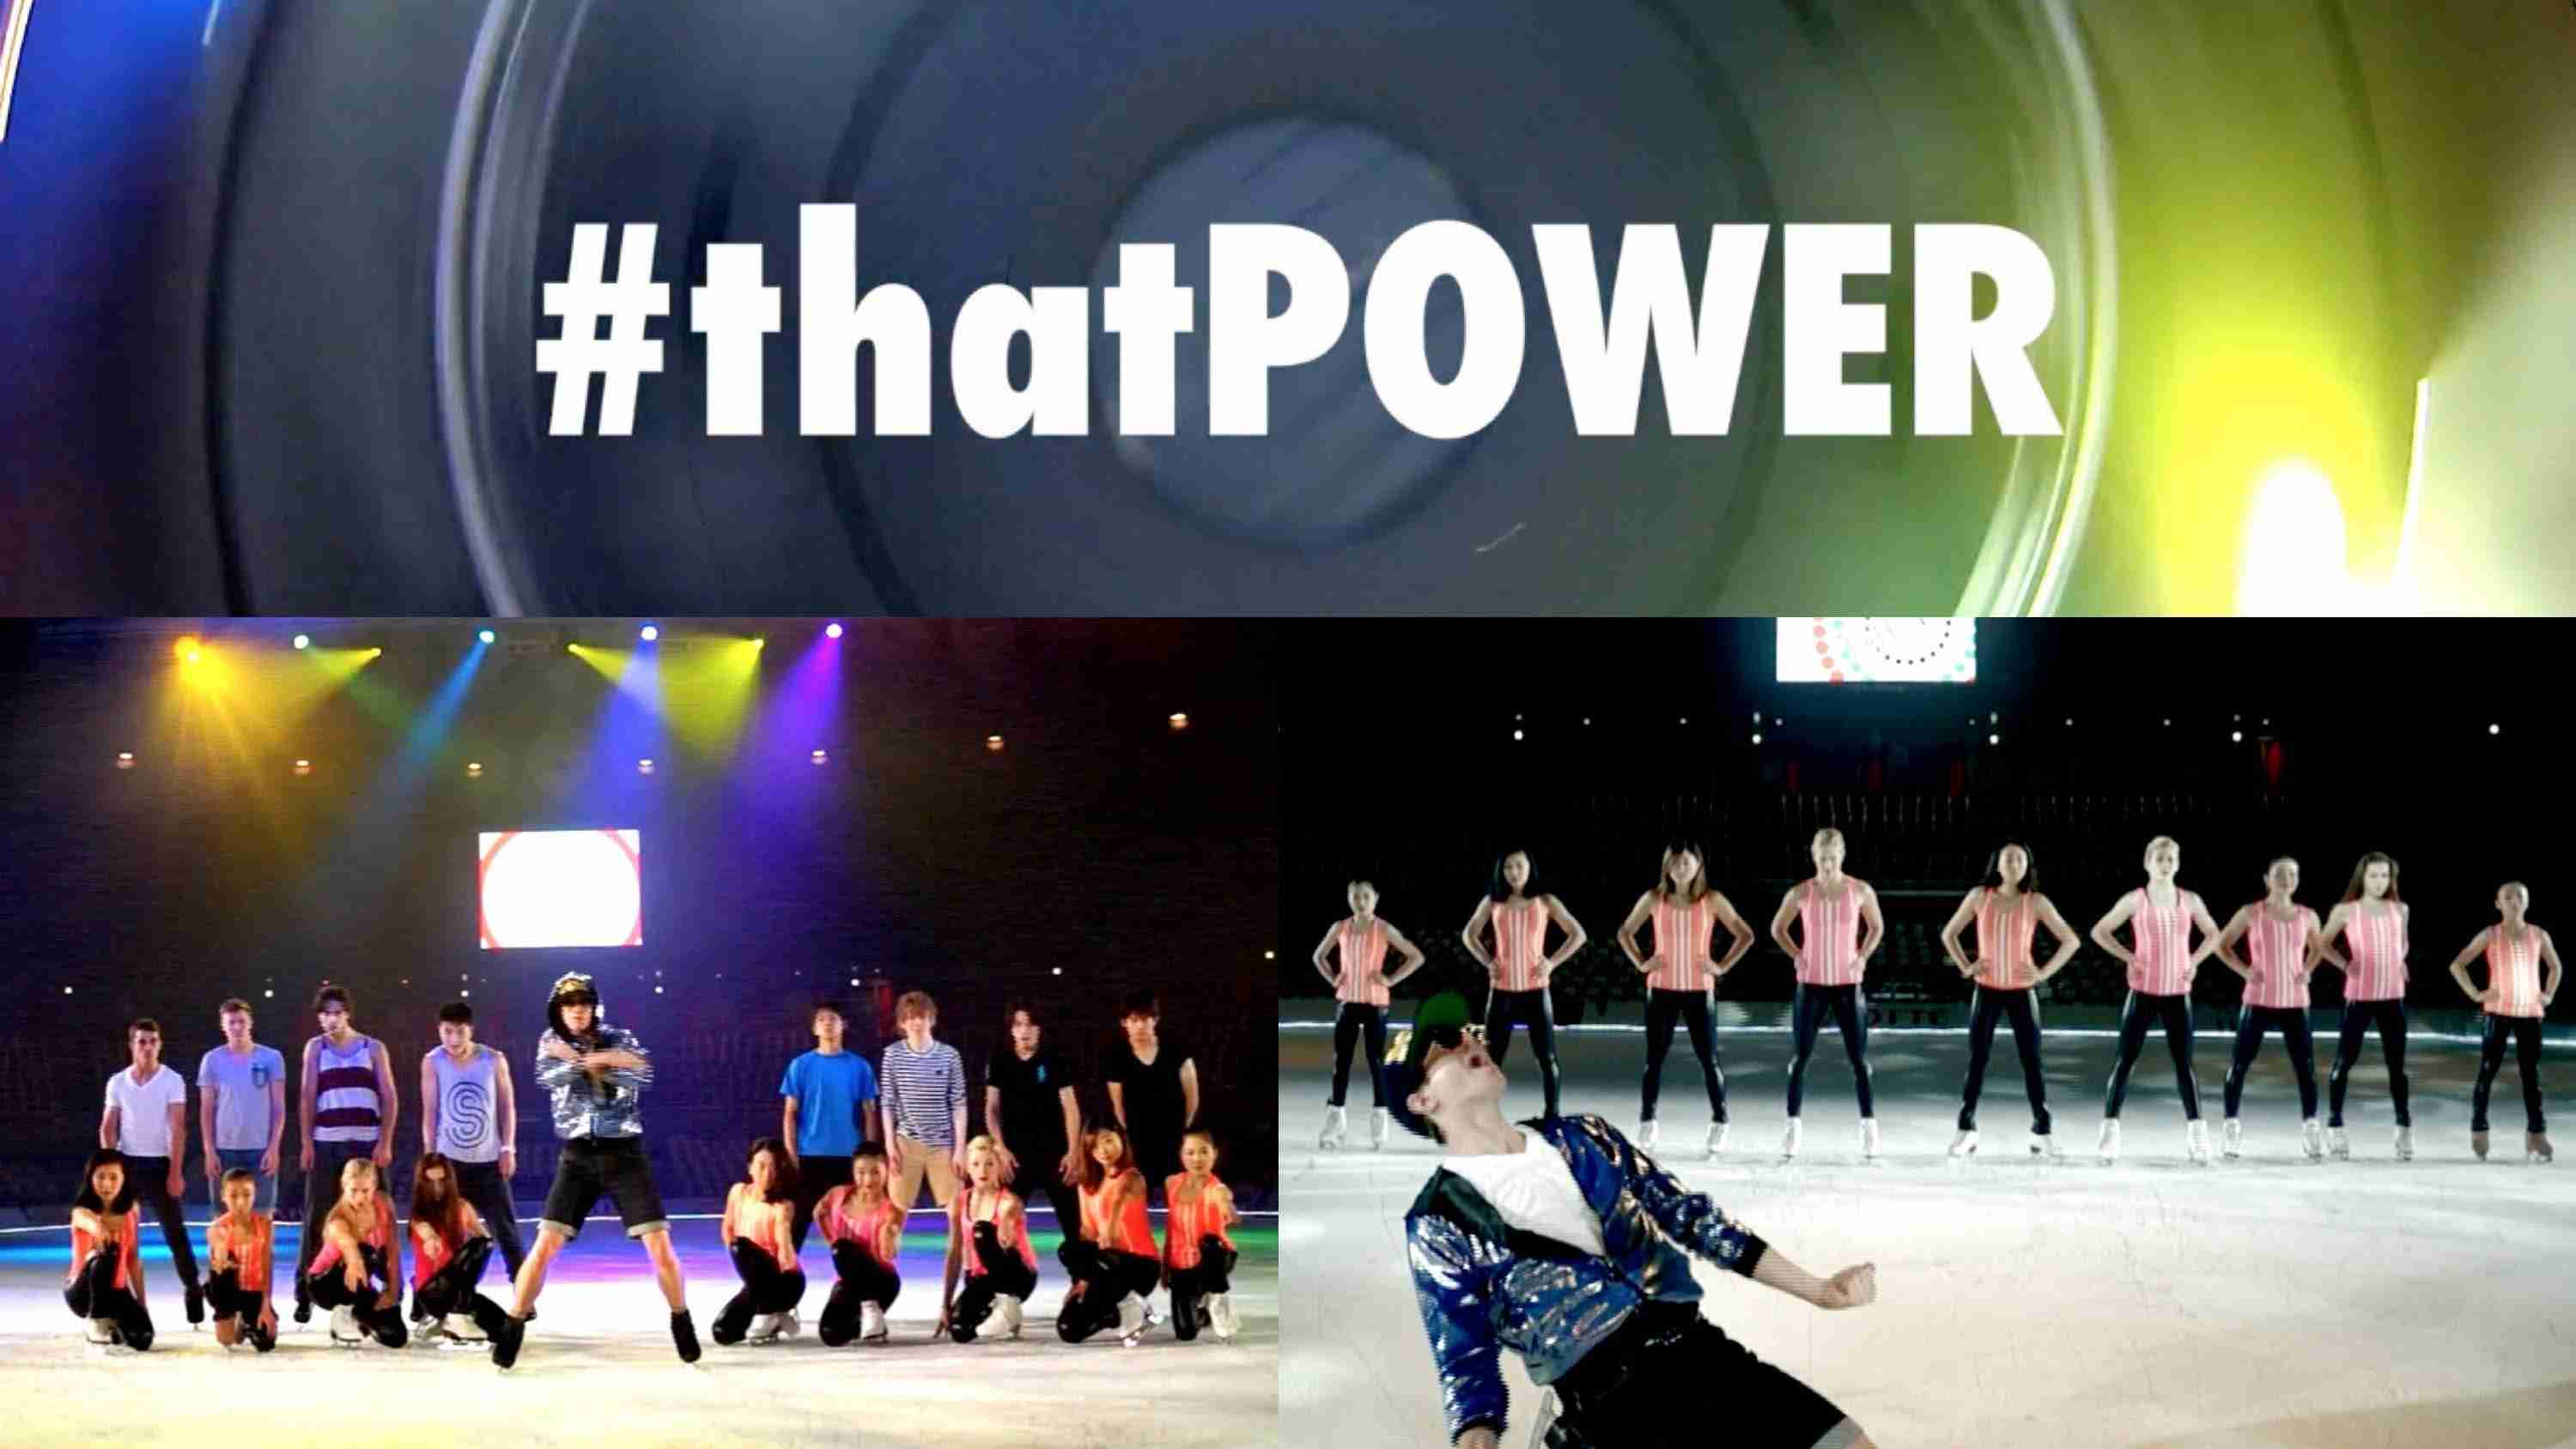 THE ICE 2013 - #thatPOWER - YouTube